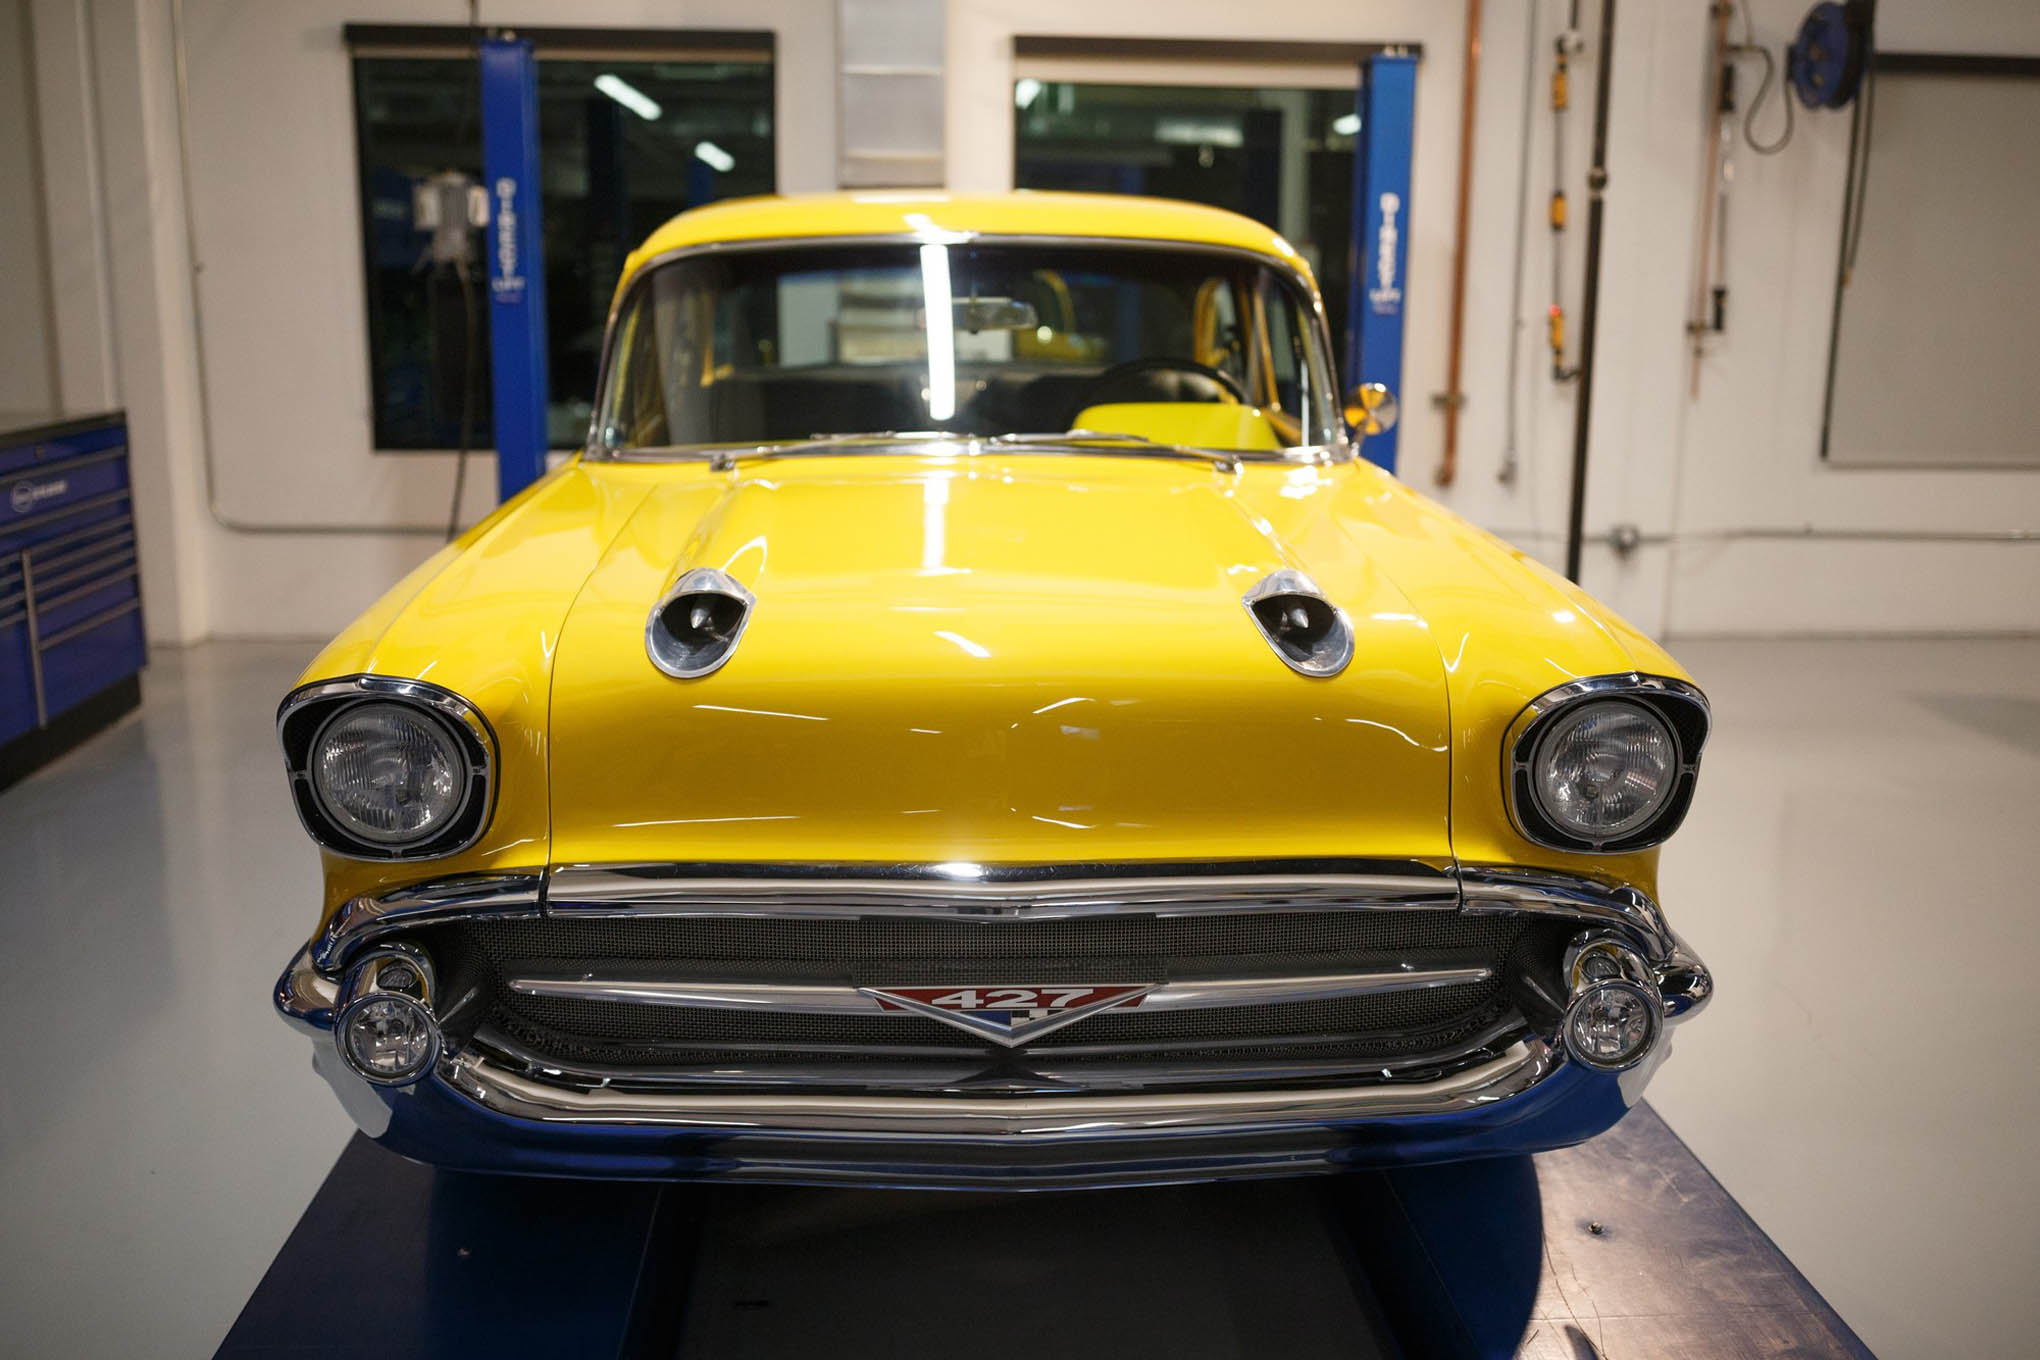 The legendary Project X 1957 Chevy was on display in the back of the Tech Center. HOT ROD recently inherited the car from Popular Hot Rodding. Thom Taylor already has some ideas swirling around his brain about what to do with the car next.